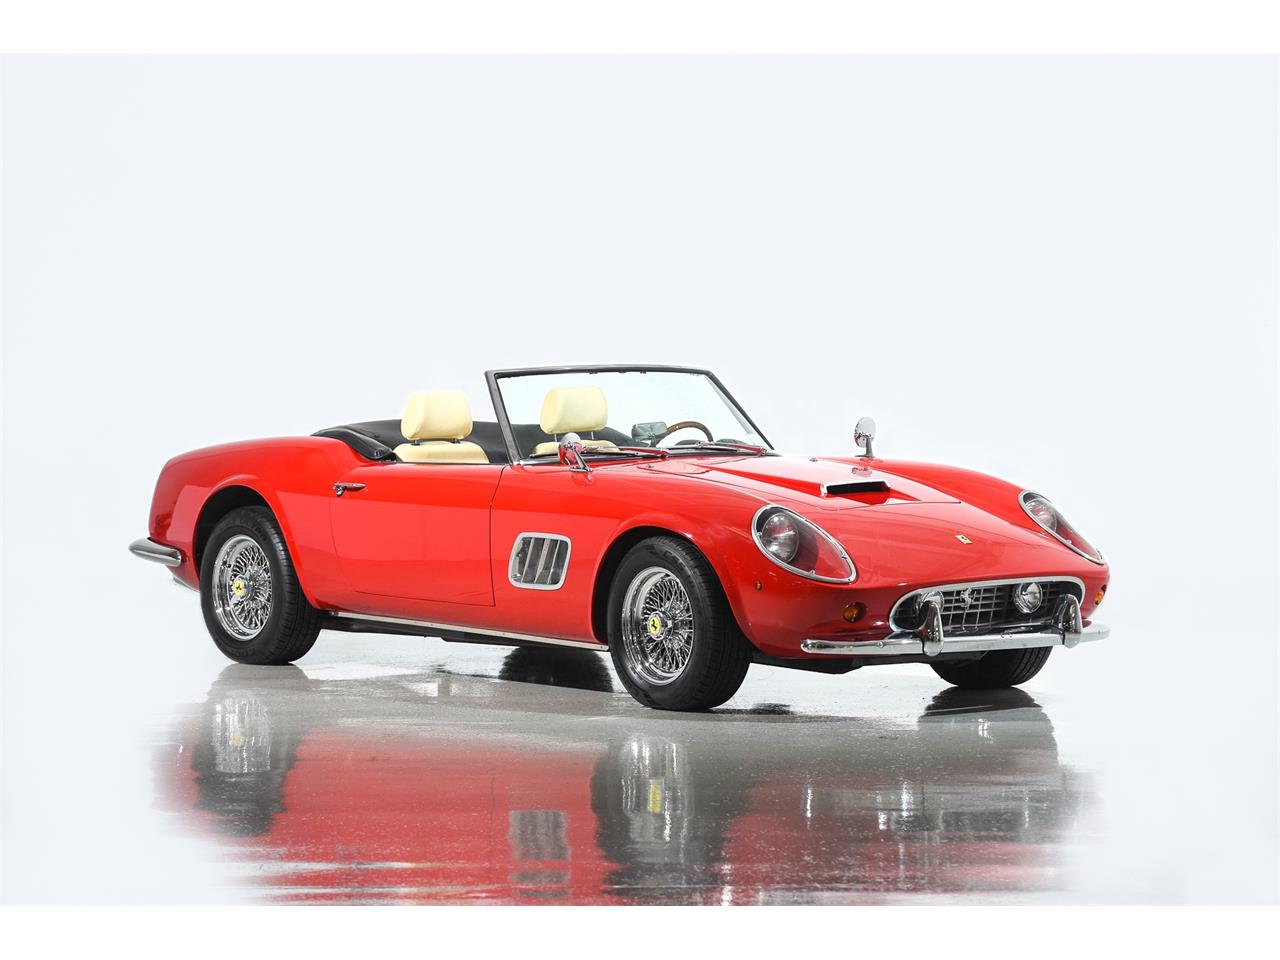 Large Picture of '62 250 GT California Spyder SWB - PX34